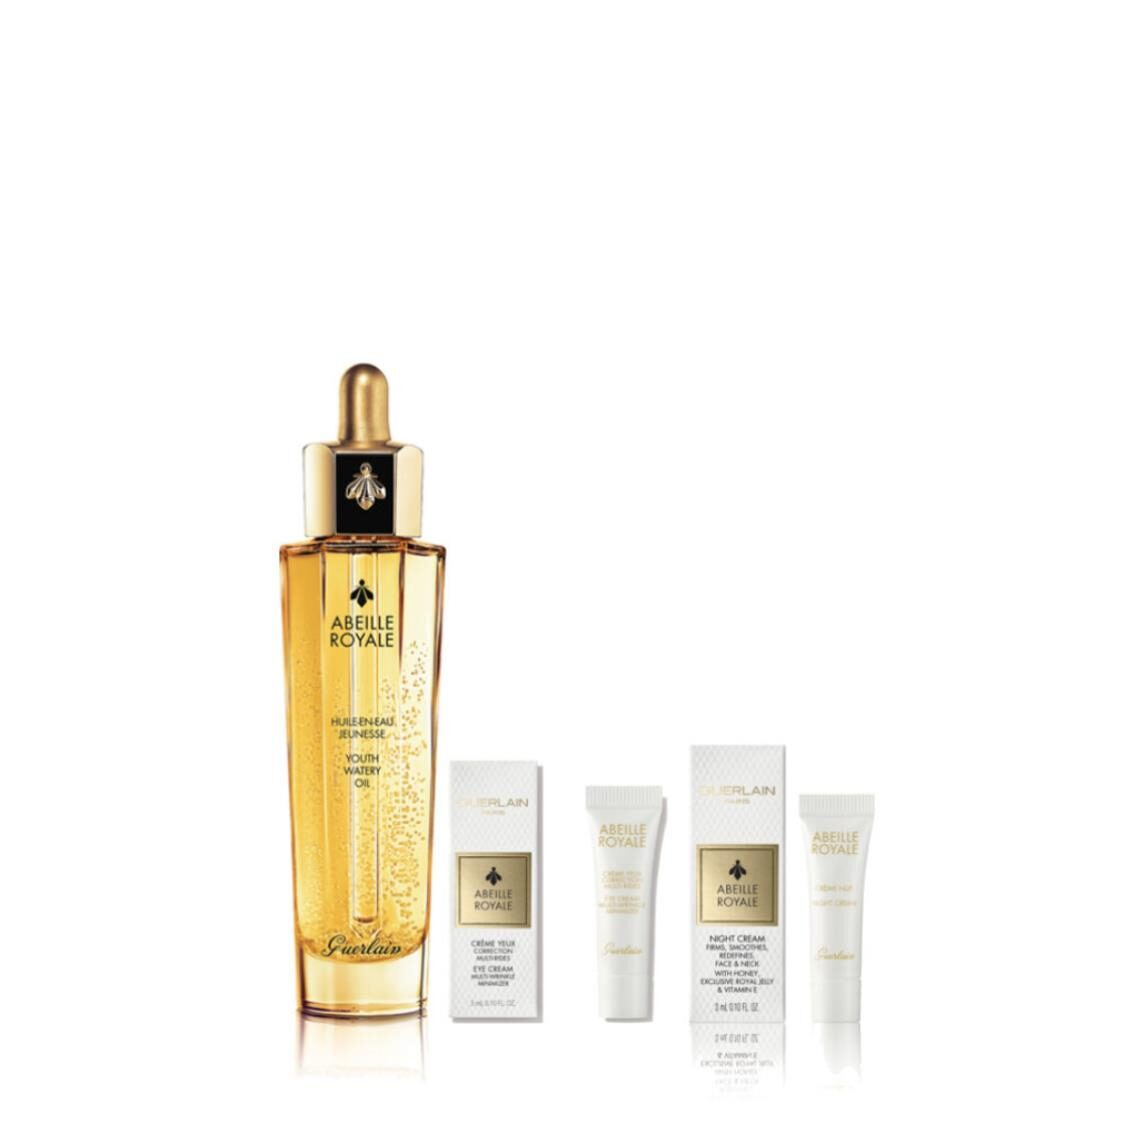 Guerlain Abeille Royale Youth Watery Oil 50ml inclusive of 2pc gift worth 255